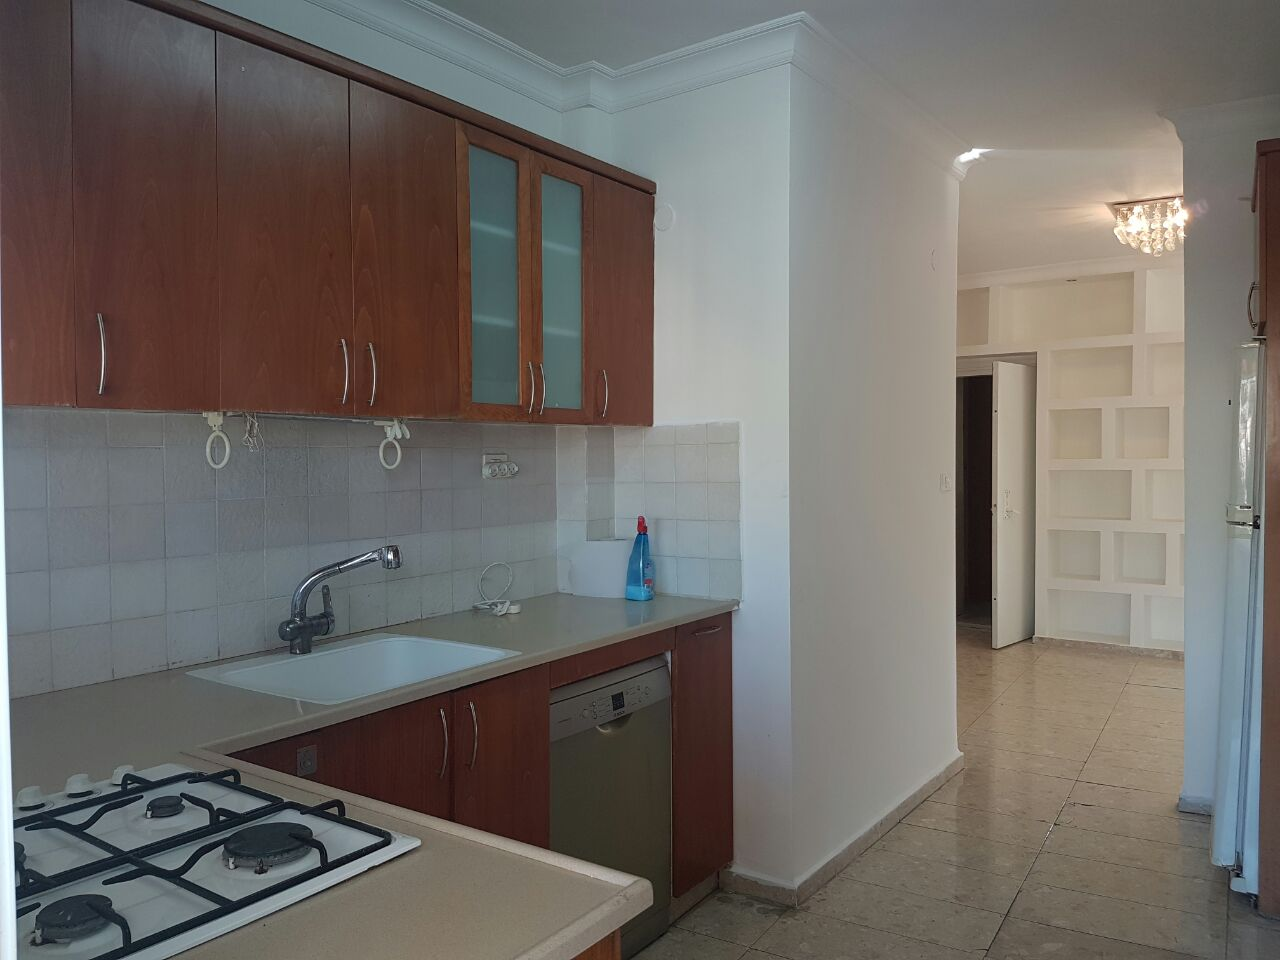 For Rent: Spacious 4 Bedroom Apartments on Rachel Emainu in Katamon ...